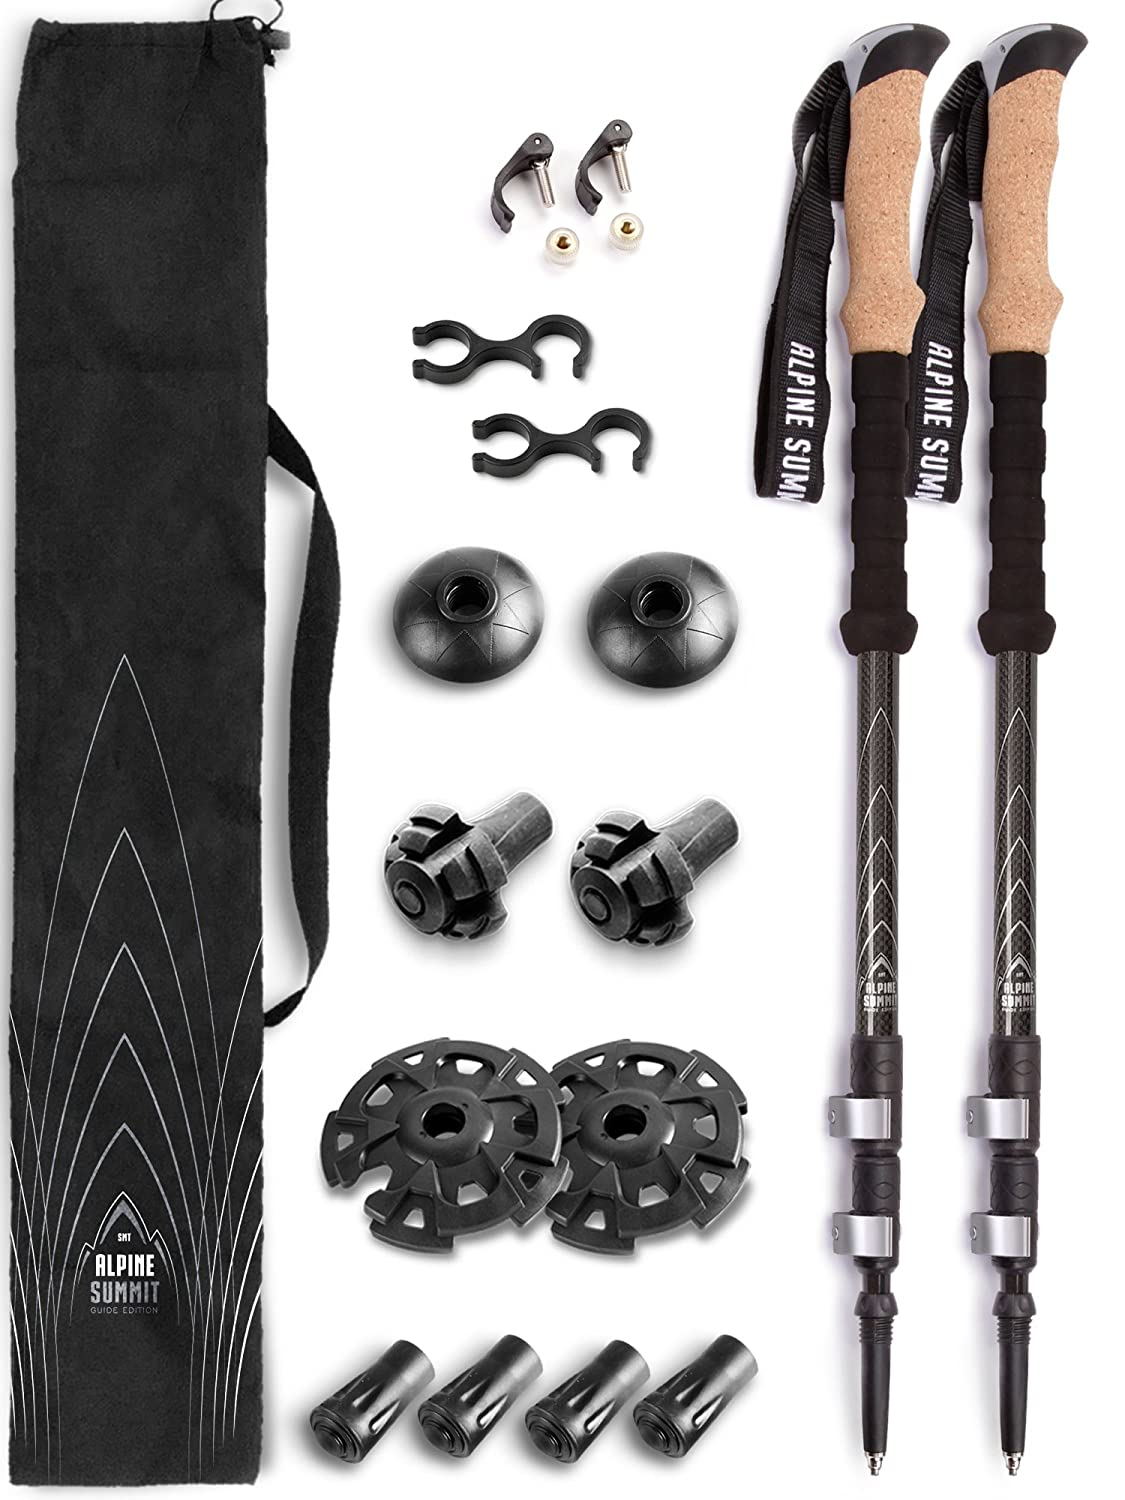 Alpine Summit 100 Carbon Fiber Trekking Poles – Pair with Cork Grips and Strong Aluminum Fliplocks. Includes All Terrain Tips and Travel Bag. for Men or Women